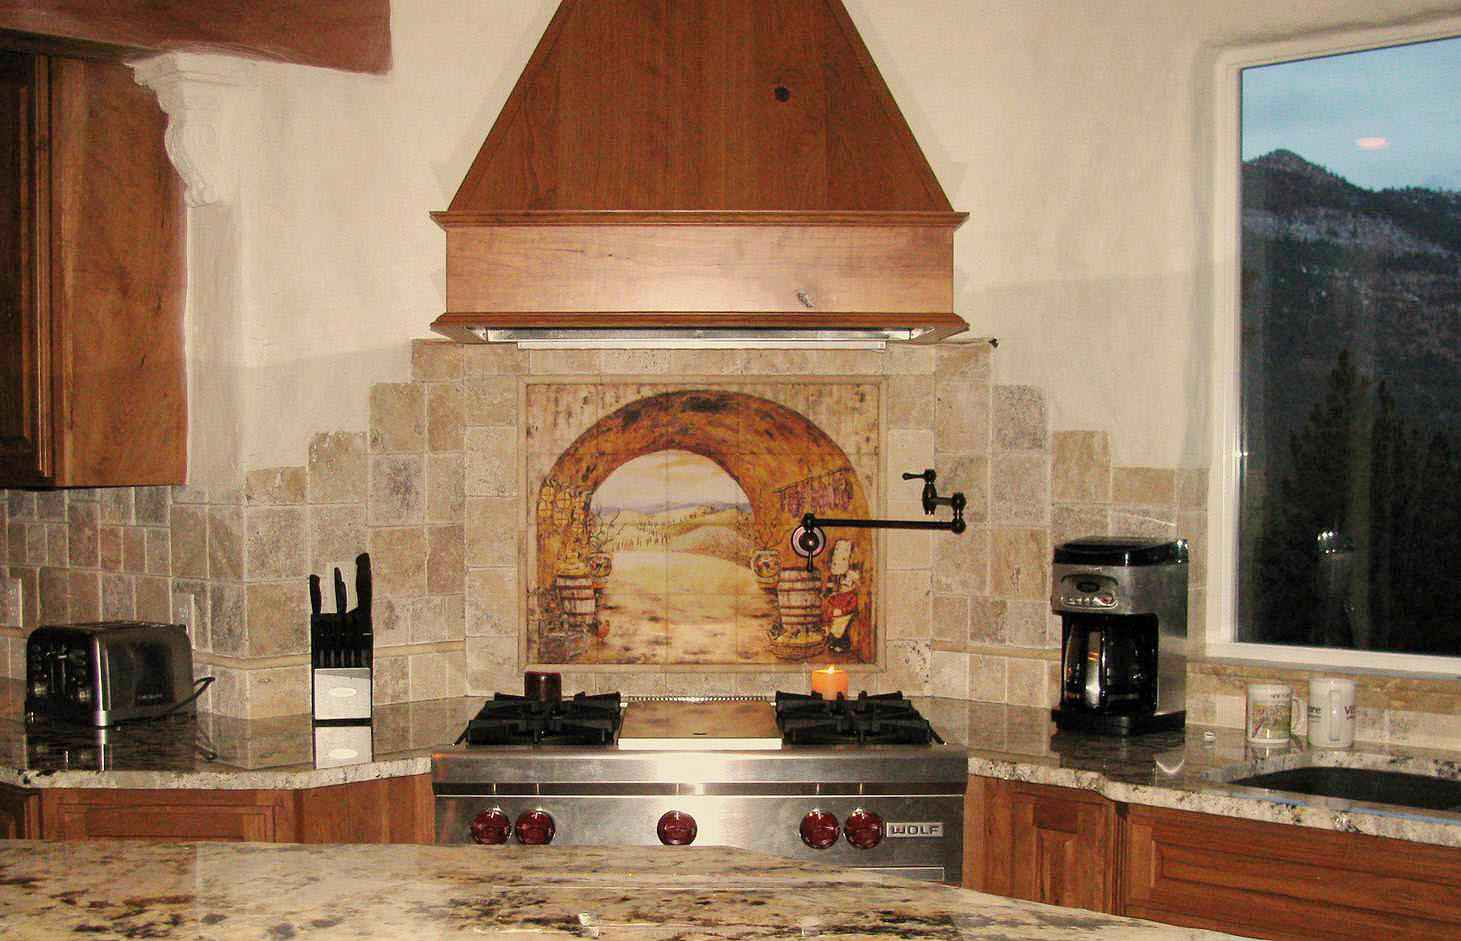 Backsplash design ideas for your kitchen Backsplash tile for kitchen